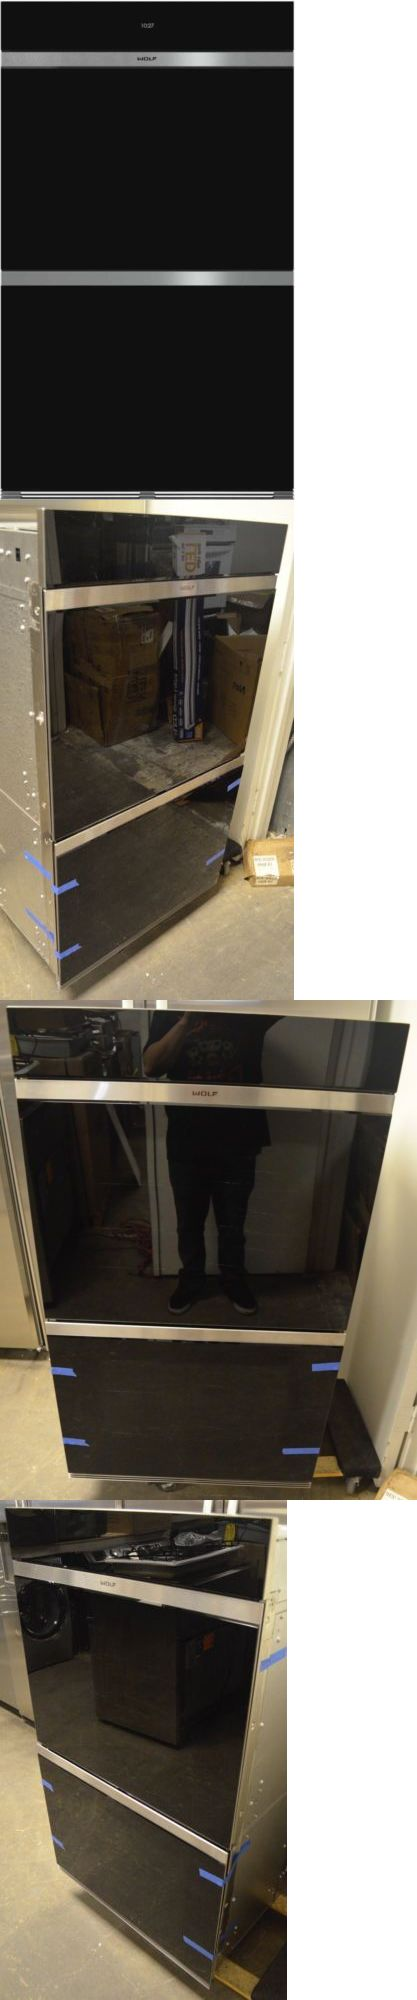 Wall Ovens 71318: Wolf 30 M Series Built-In Double Electric Wall Oven Black Glass Do30cmb -> BUY IT NOW ONLY: $5900 on eBay!